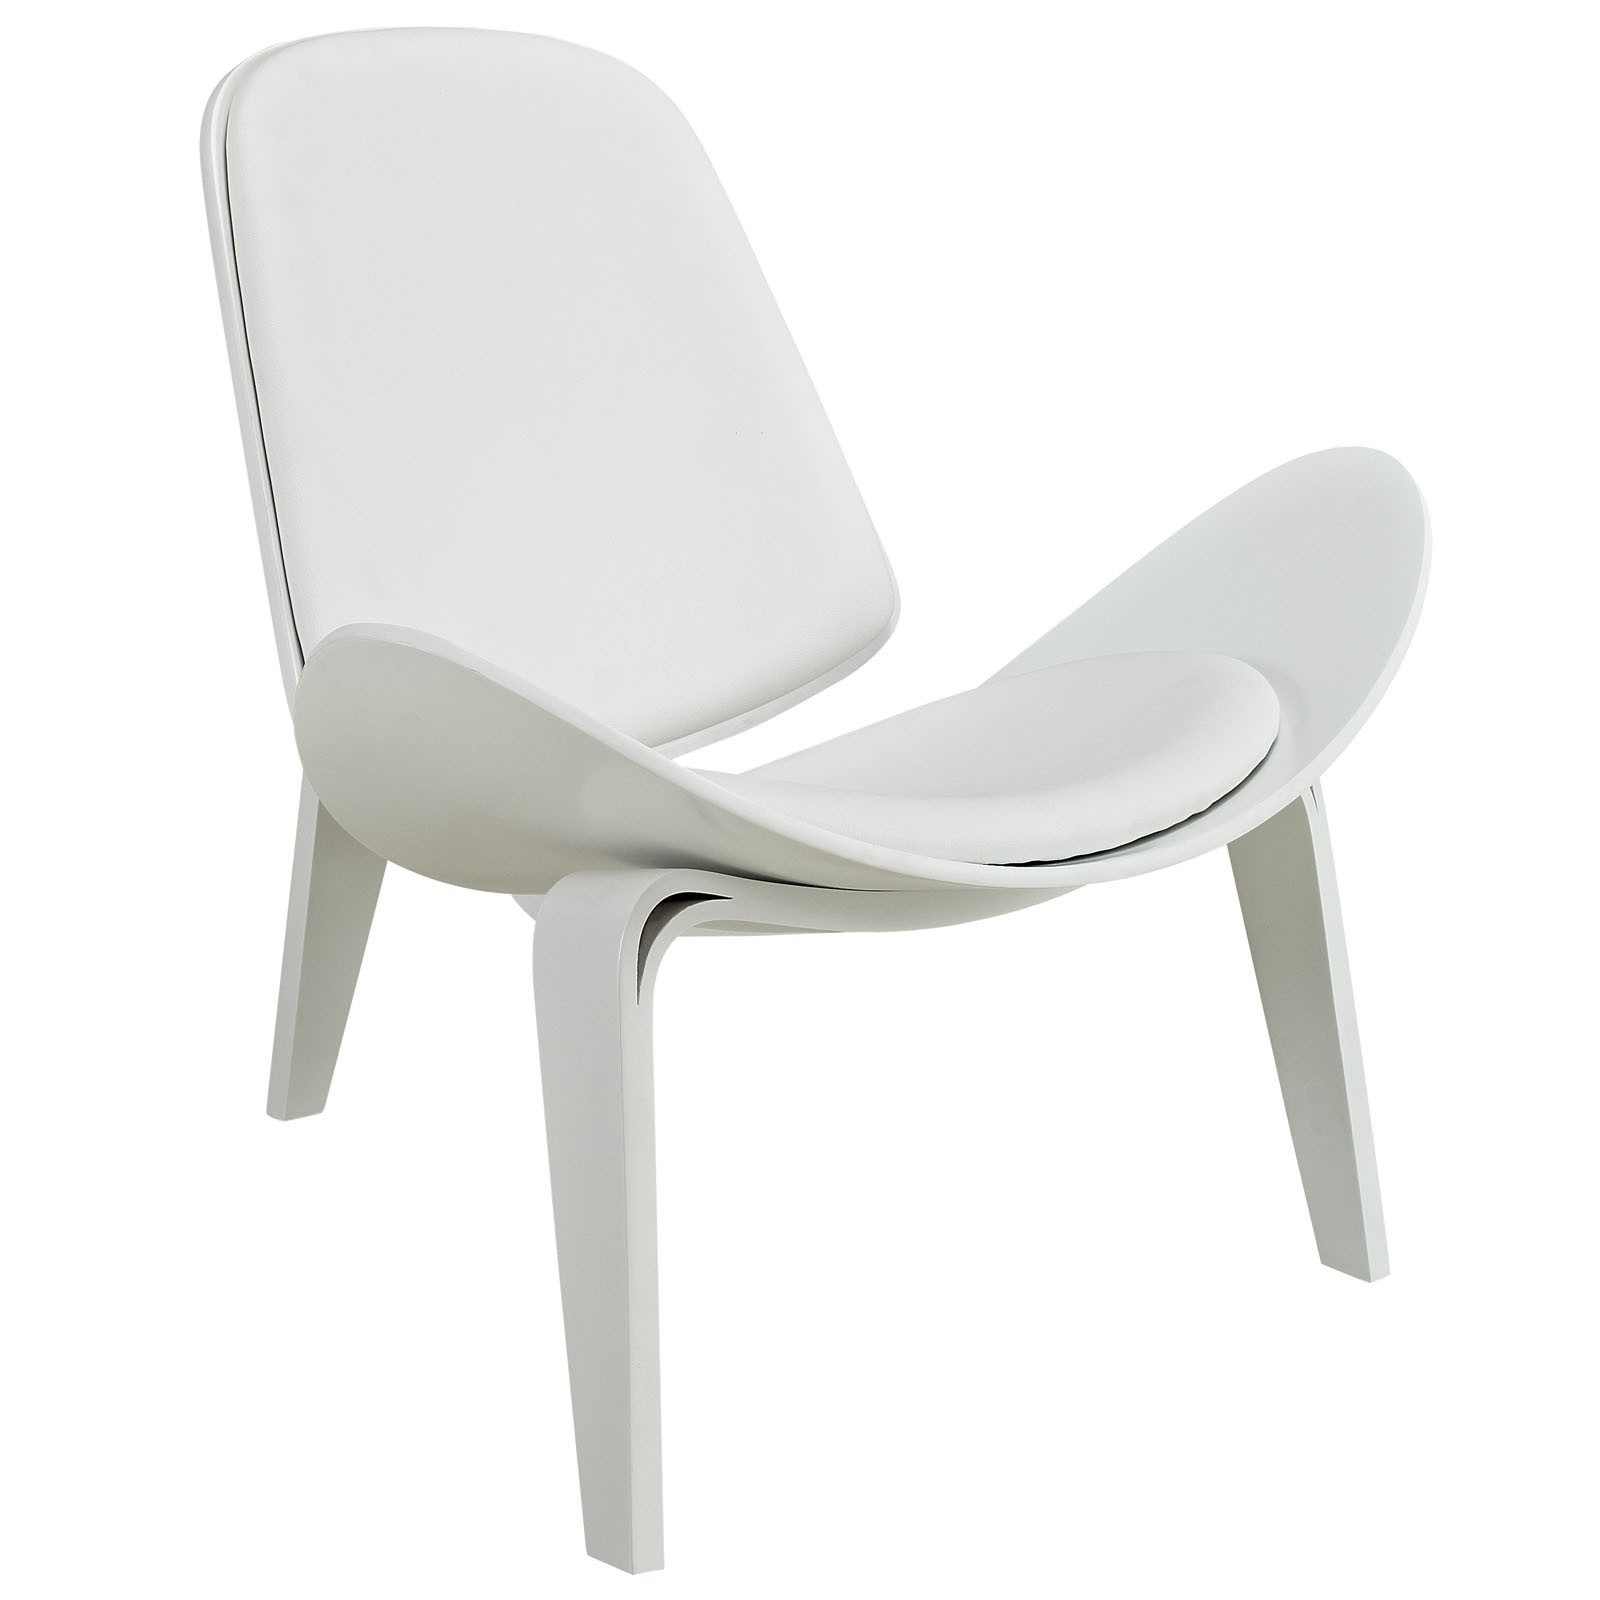 stackable chairs party en ip commercial folding event white plastic chair wedding